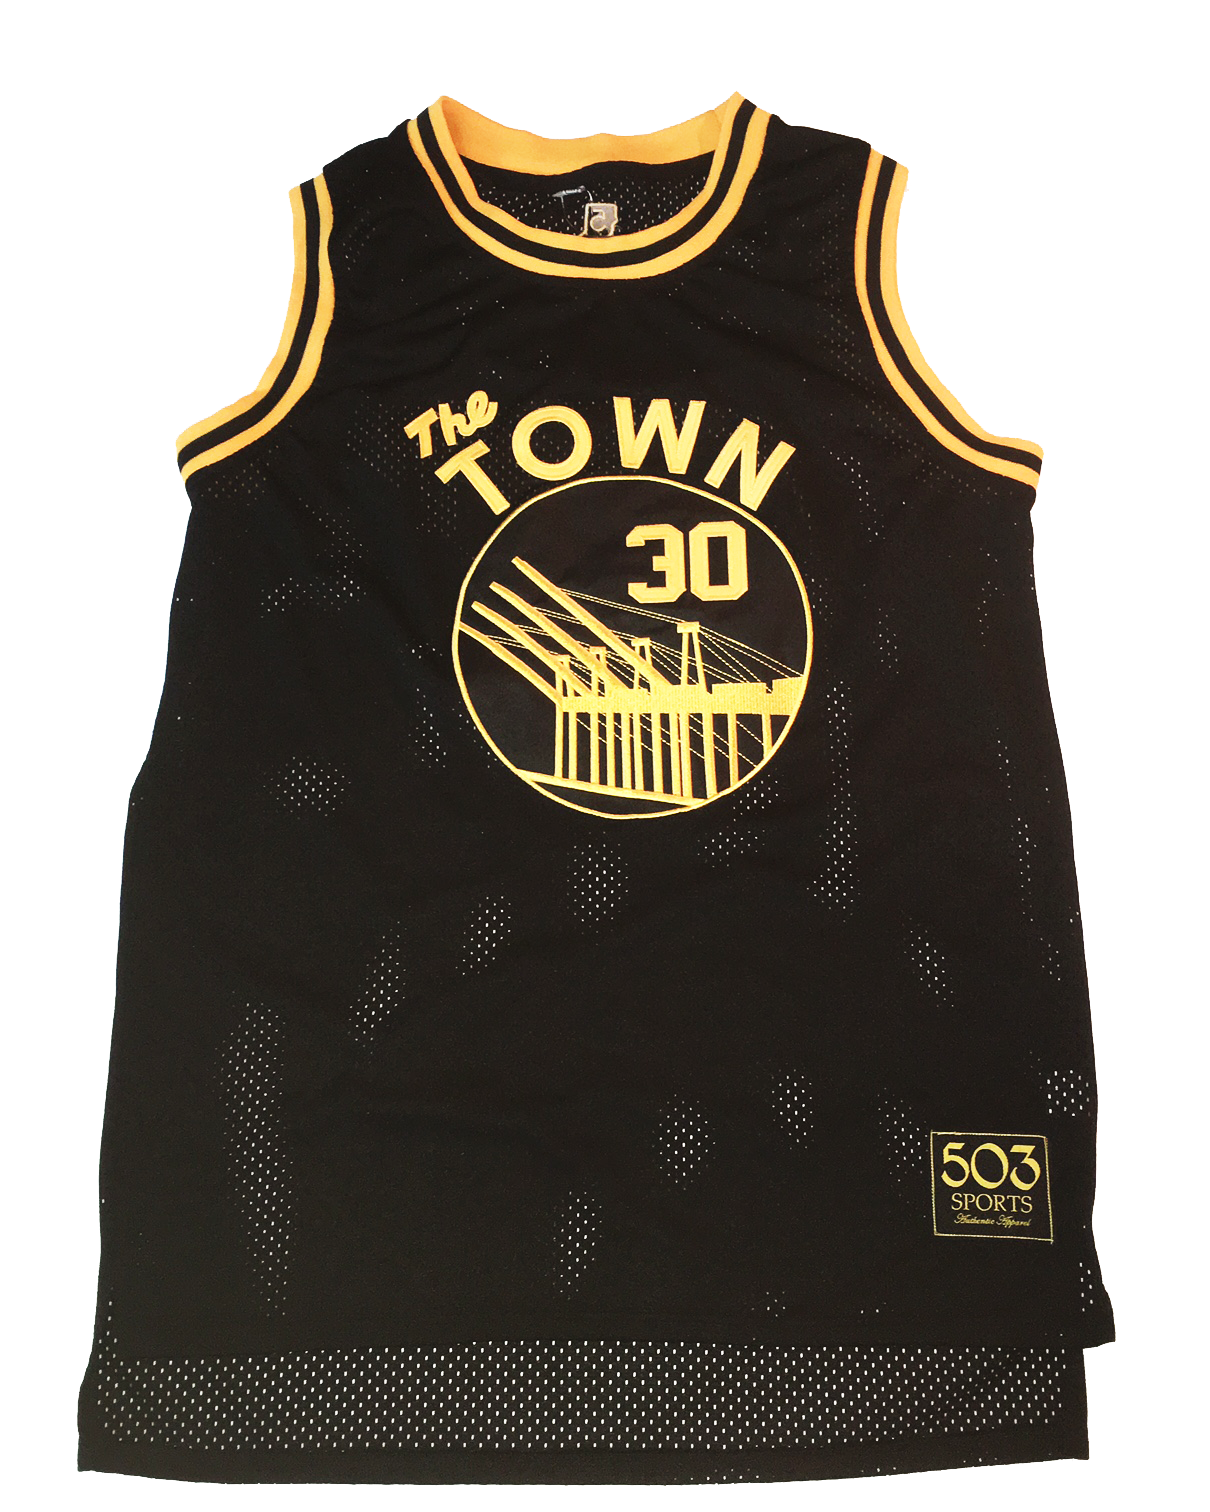 size 40 89284 8a29f The Town Throwback Jersey The City Oakland Stephen Curry ...